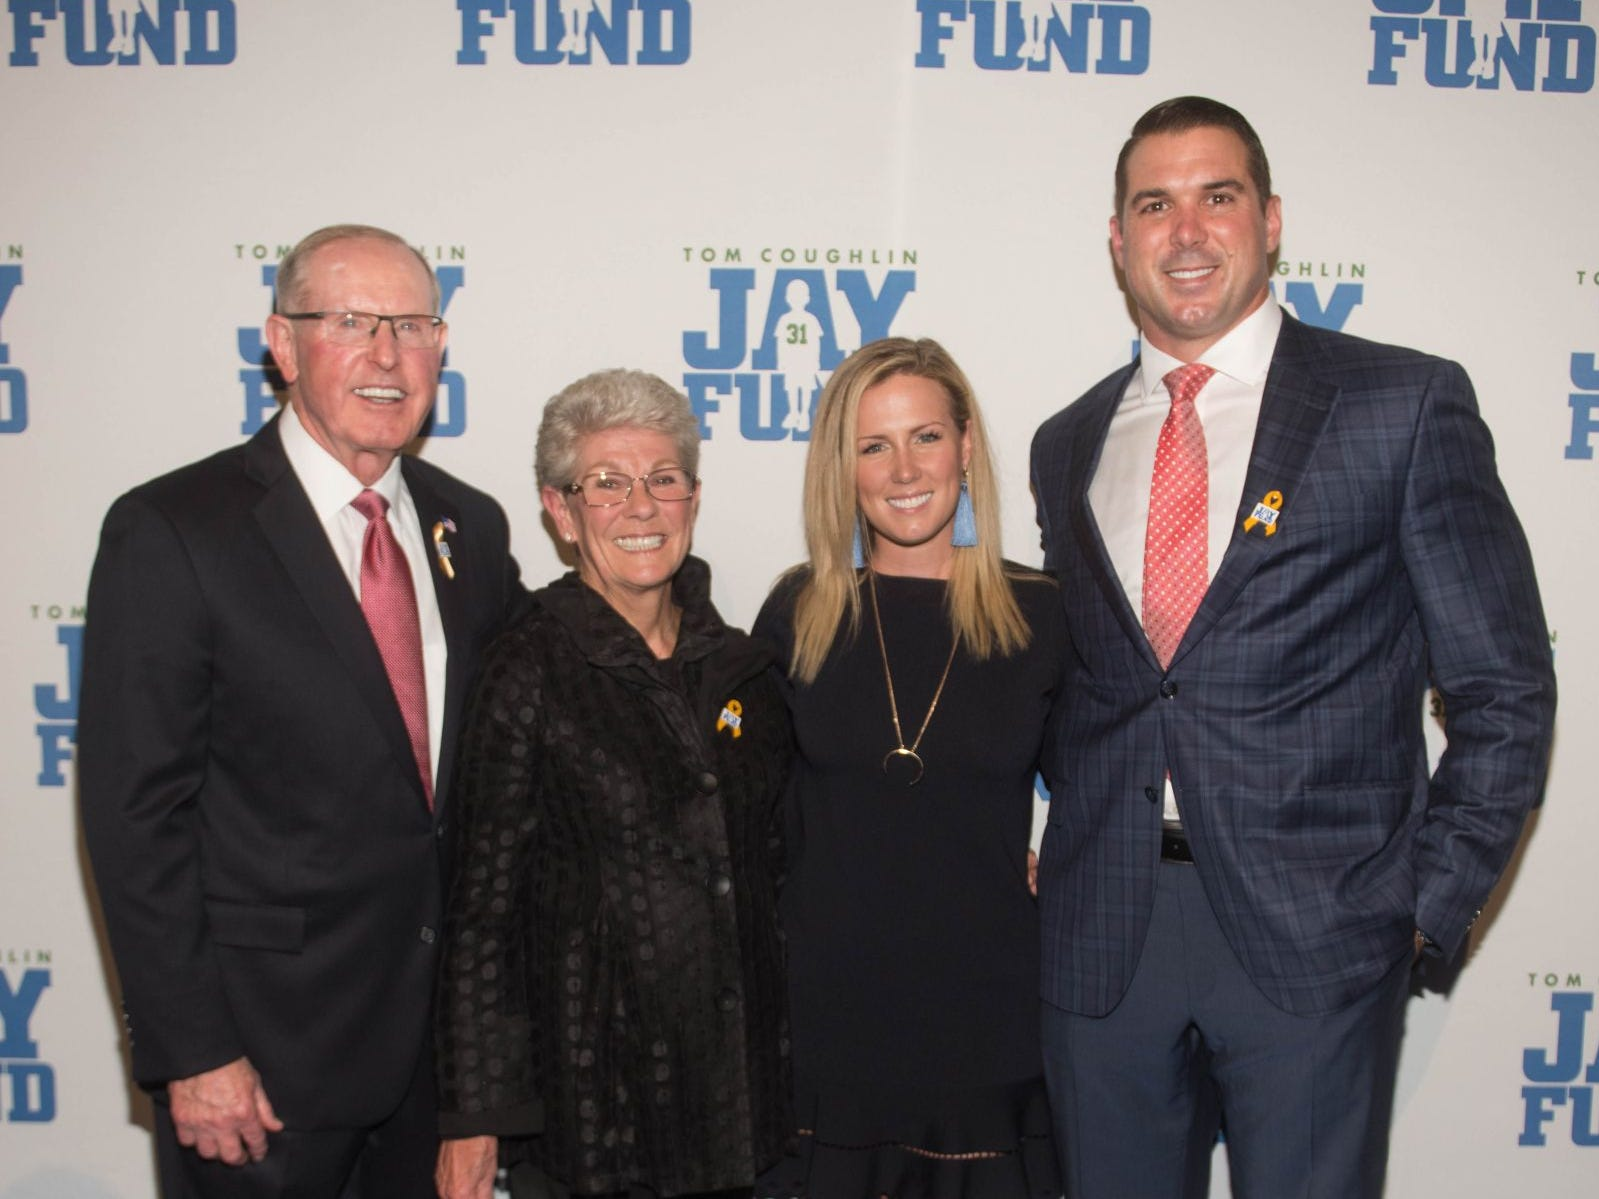 Tom Coughlin, Judy Coughlin, Kate Hammond and Zak DeOssie. The 14th annual Jay Fund Champions for Children Gala was held at Cipriani 42nd Street. 09/21/2018